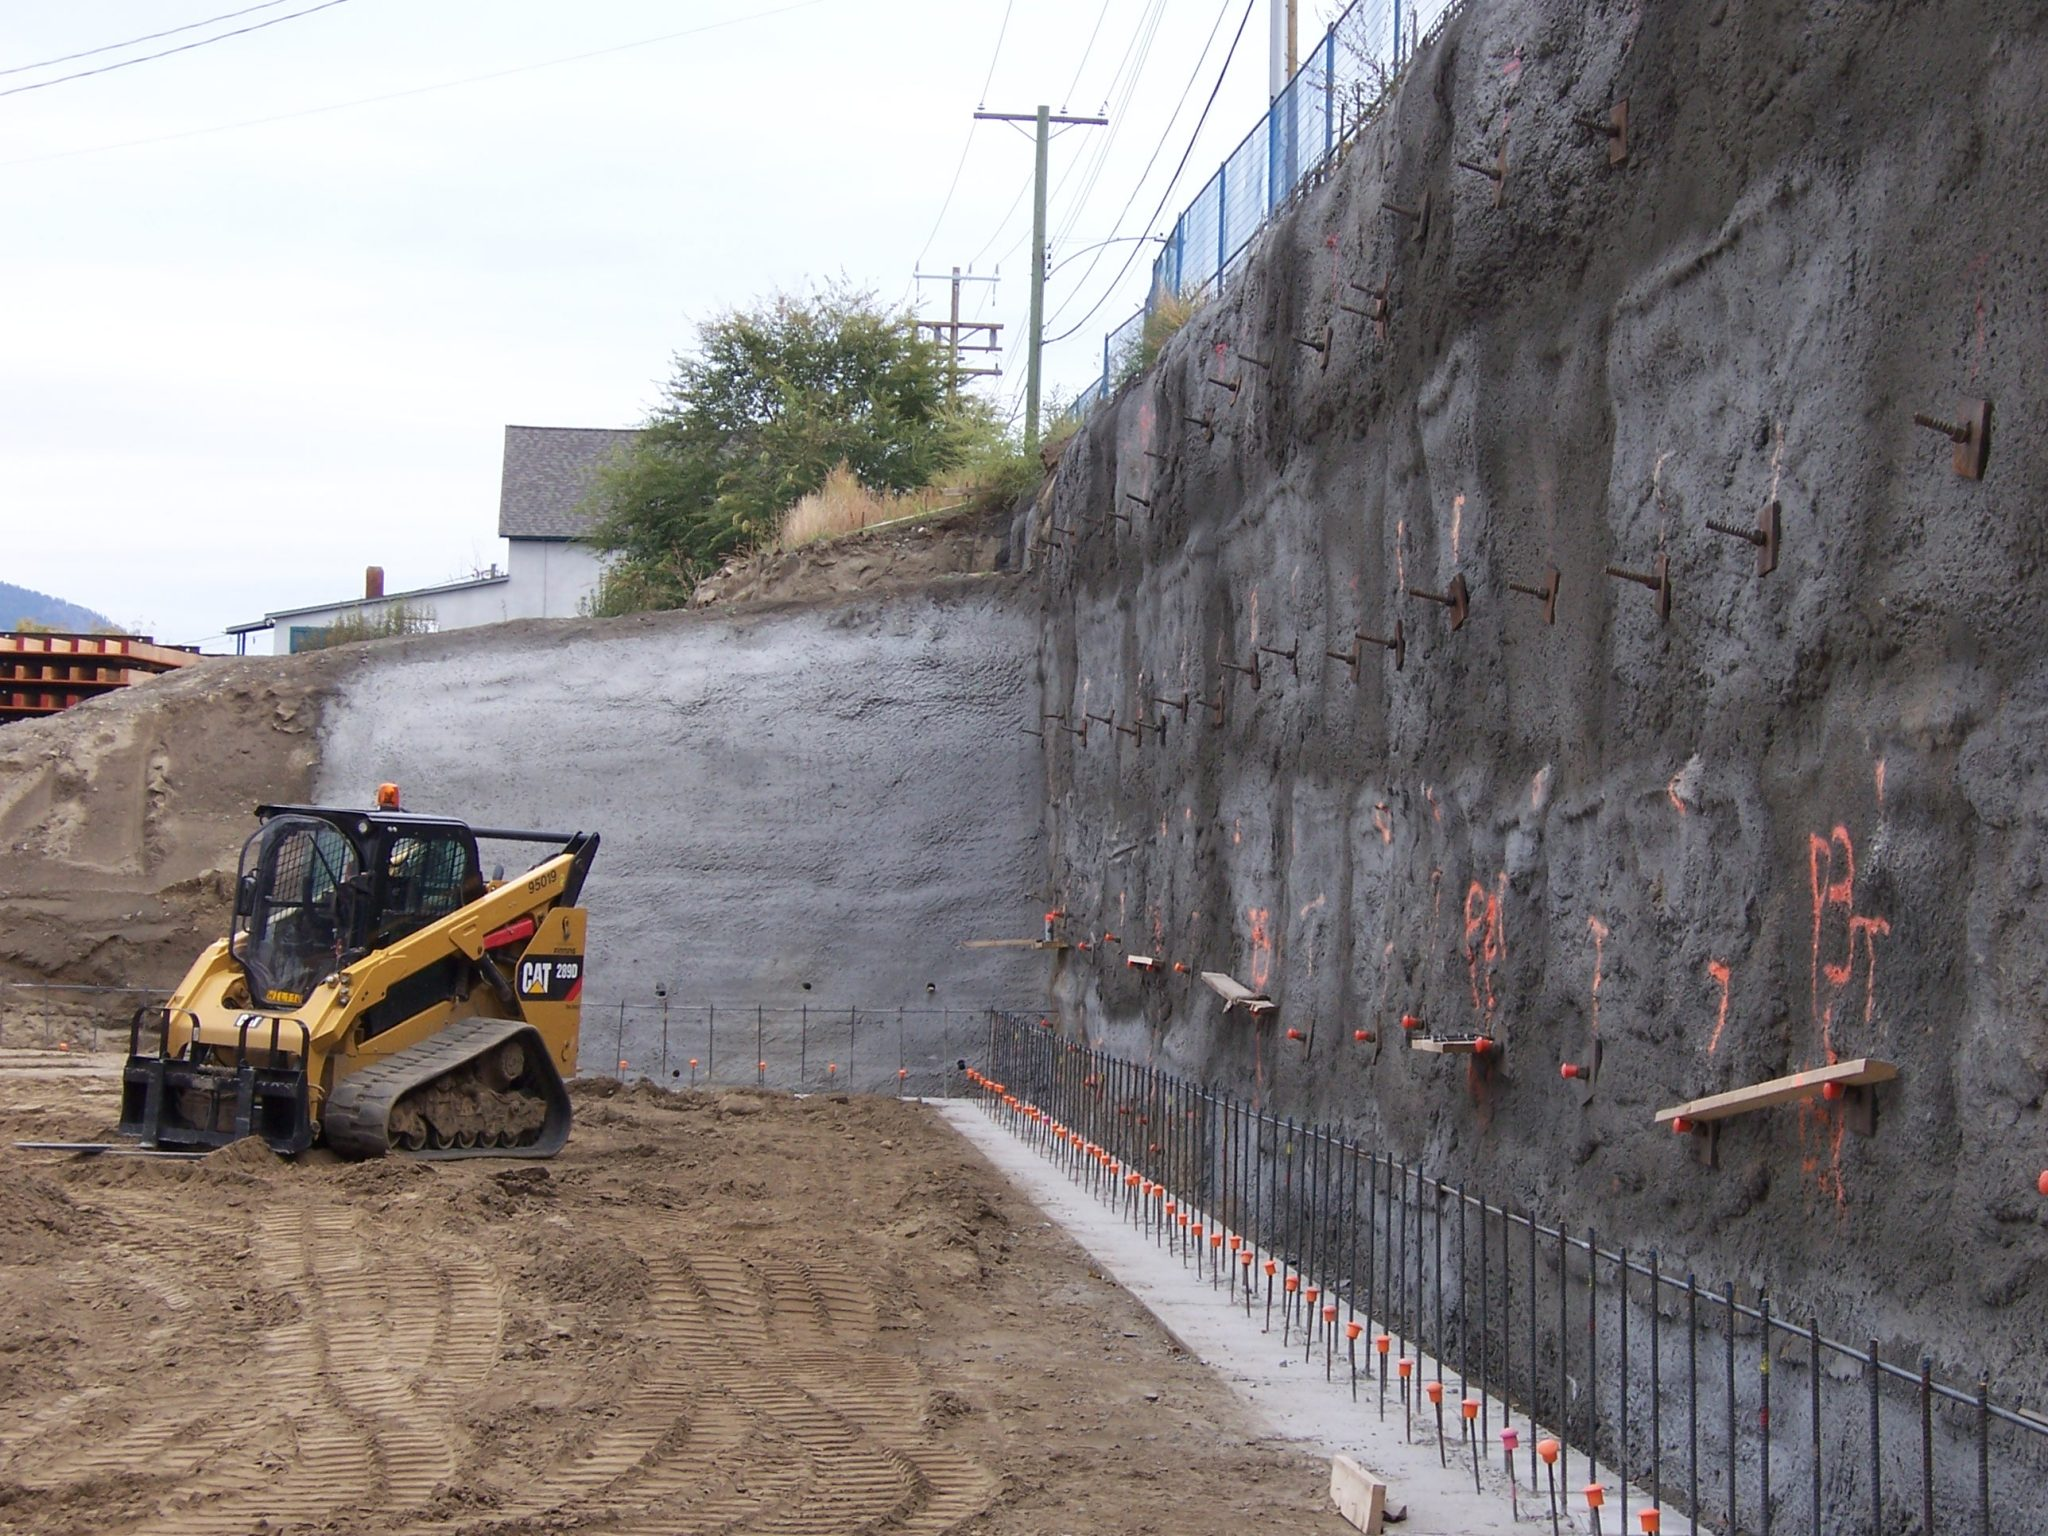 vertical wall with shotcrete and a tracked skid steer